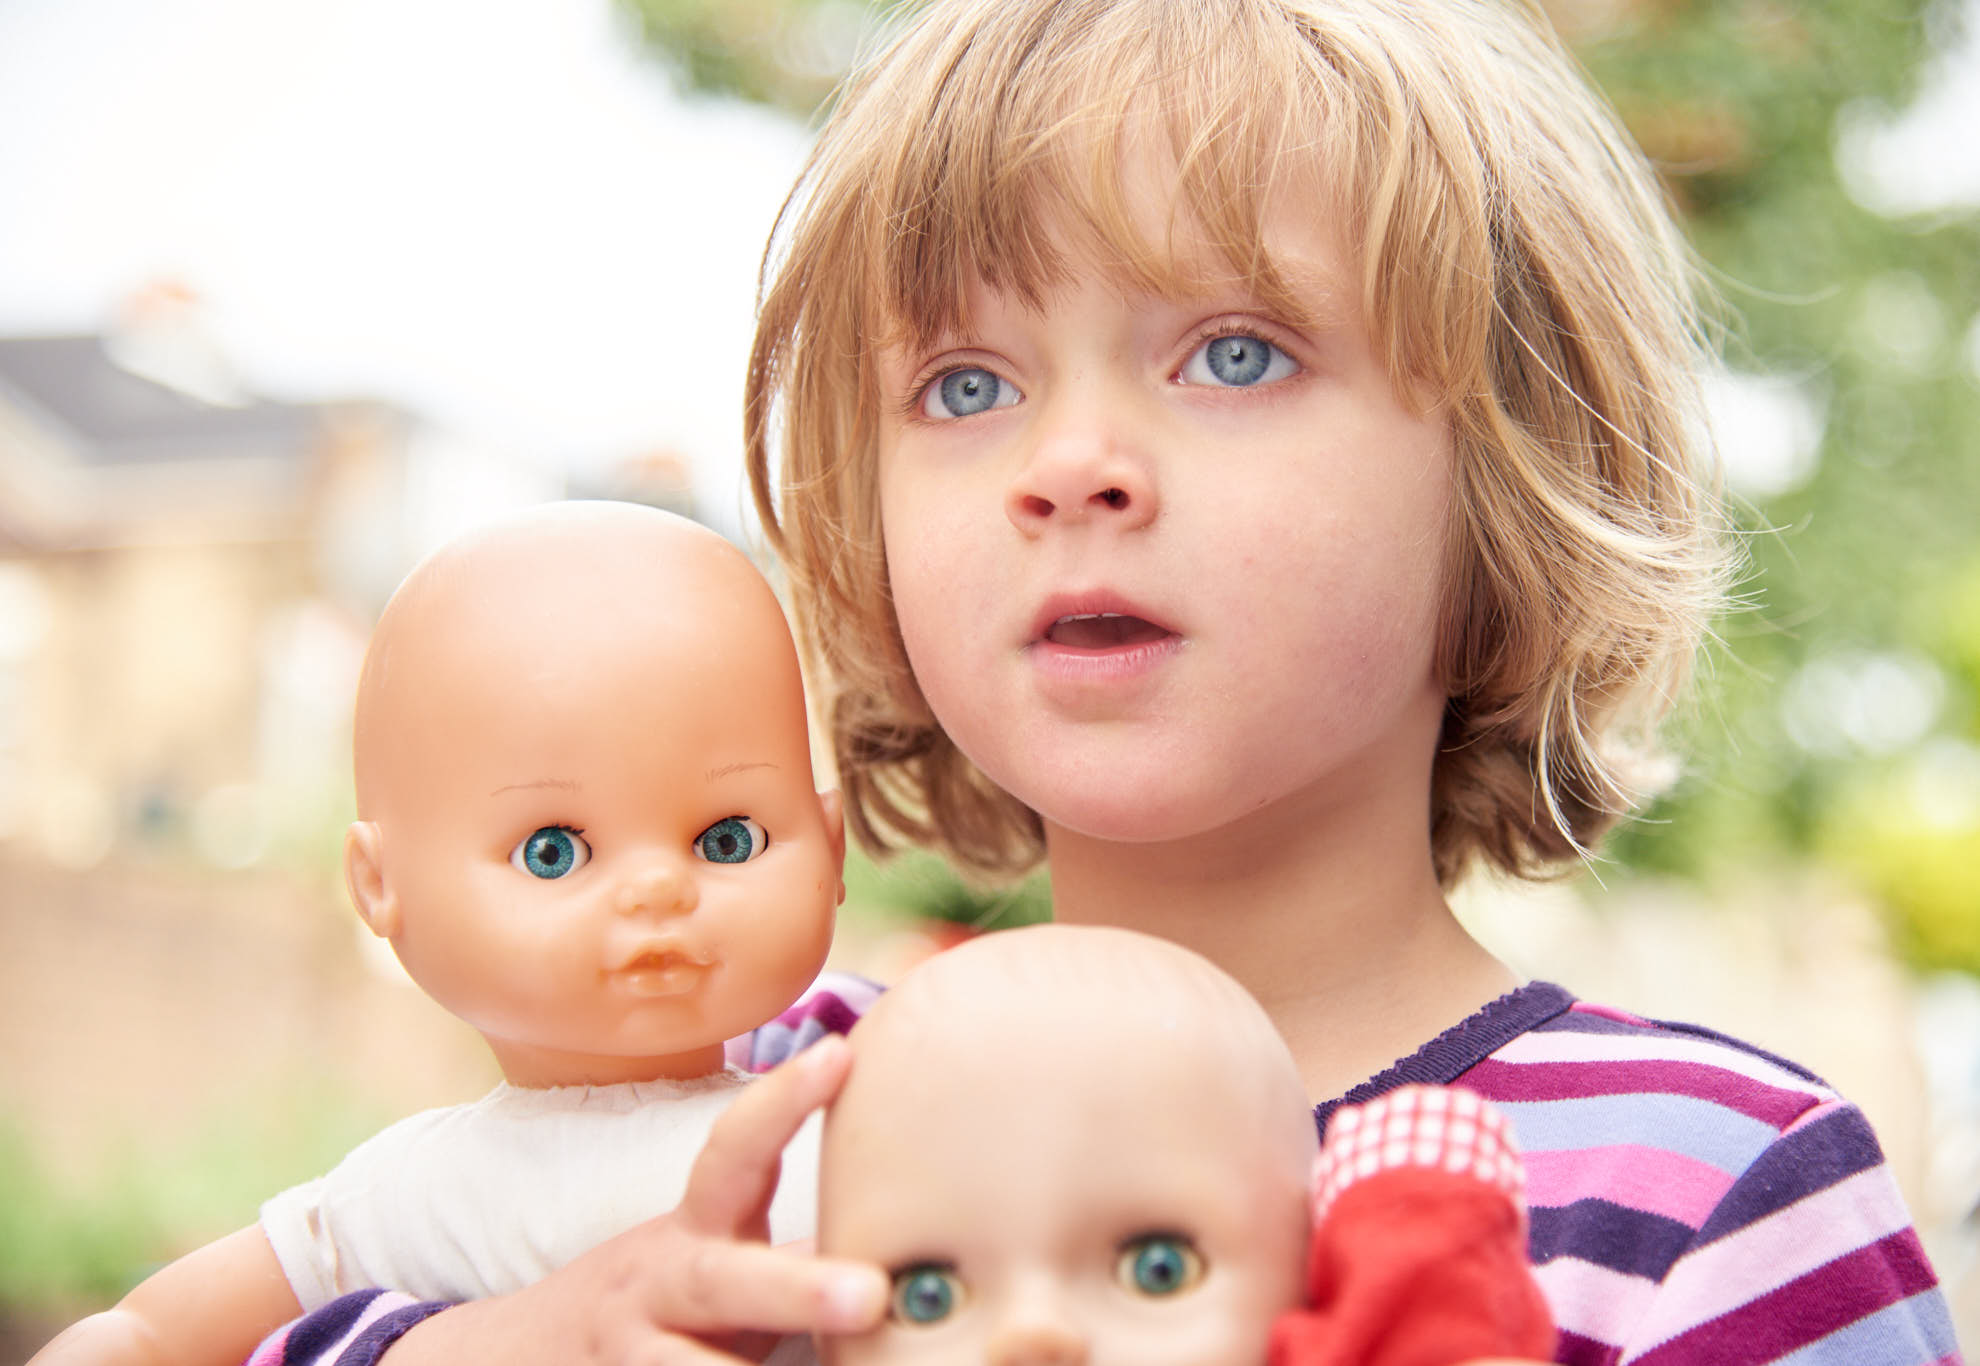 kids photographer - natural photos in london - look at her favourite dolls!